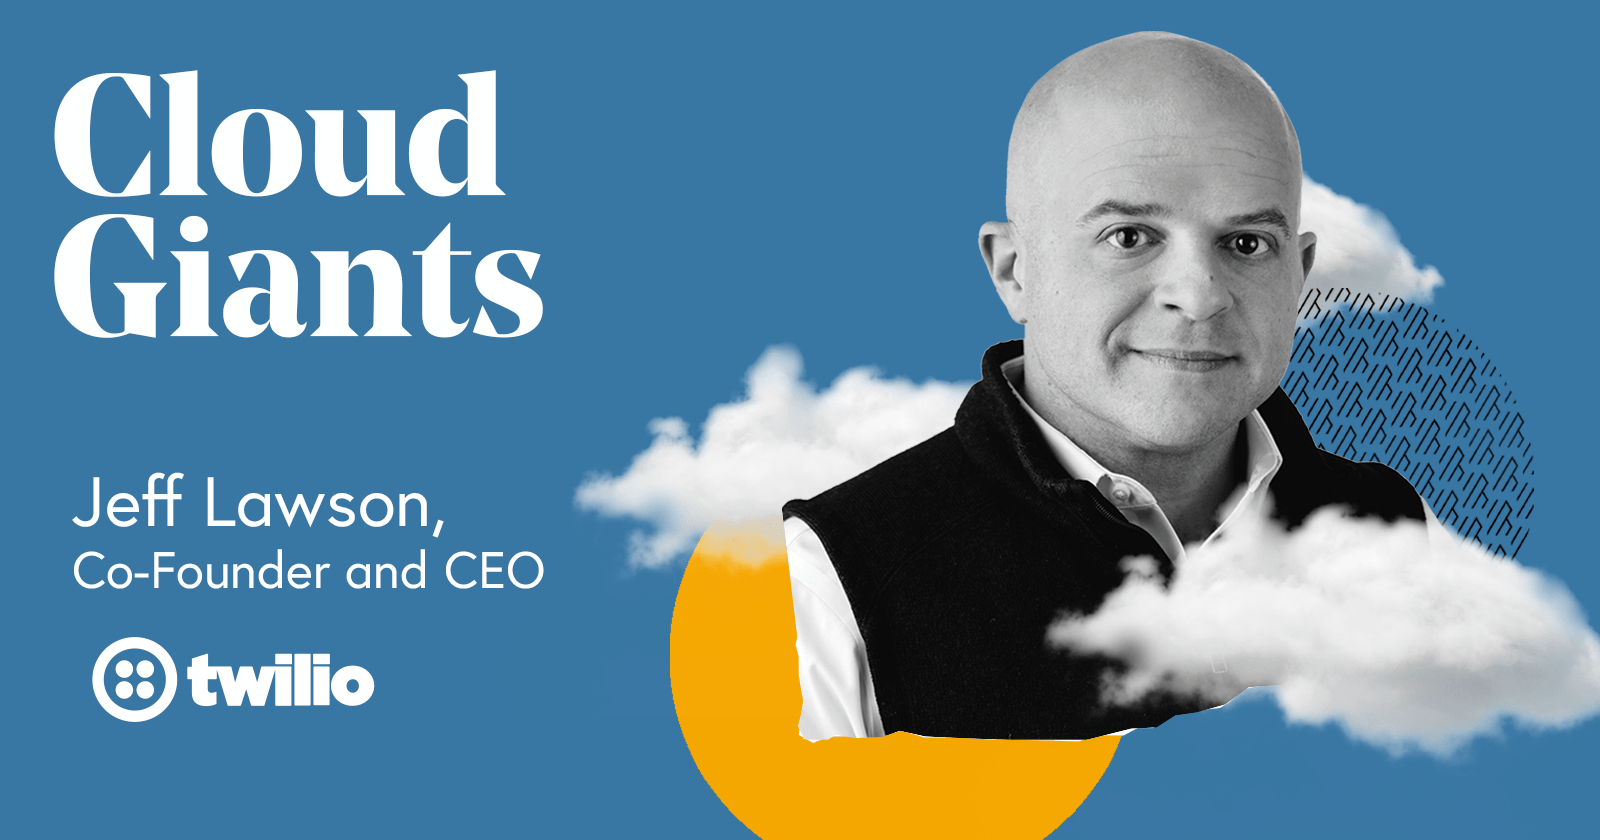 Cloud Giants with Jeff Lawson Co-Founder and CEO Twilio